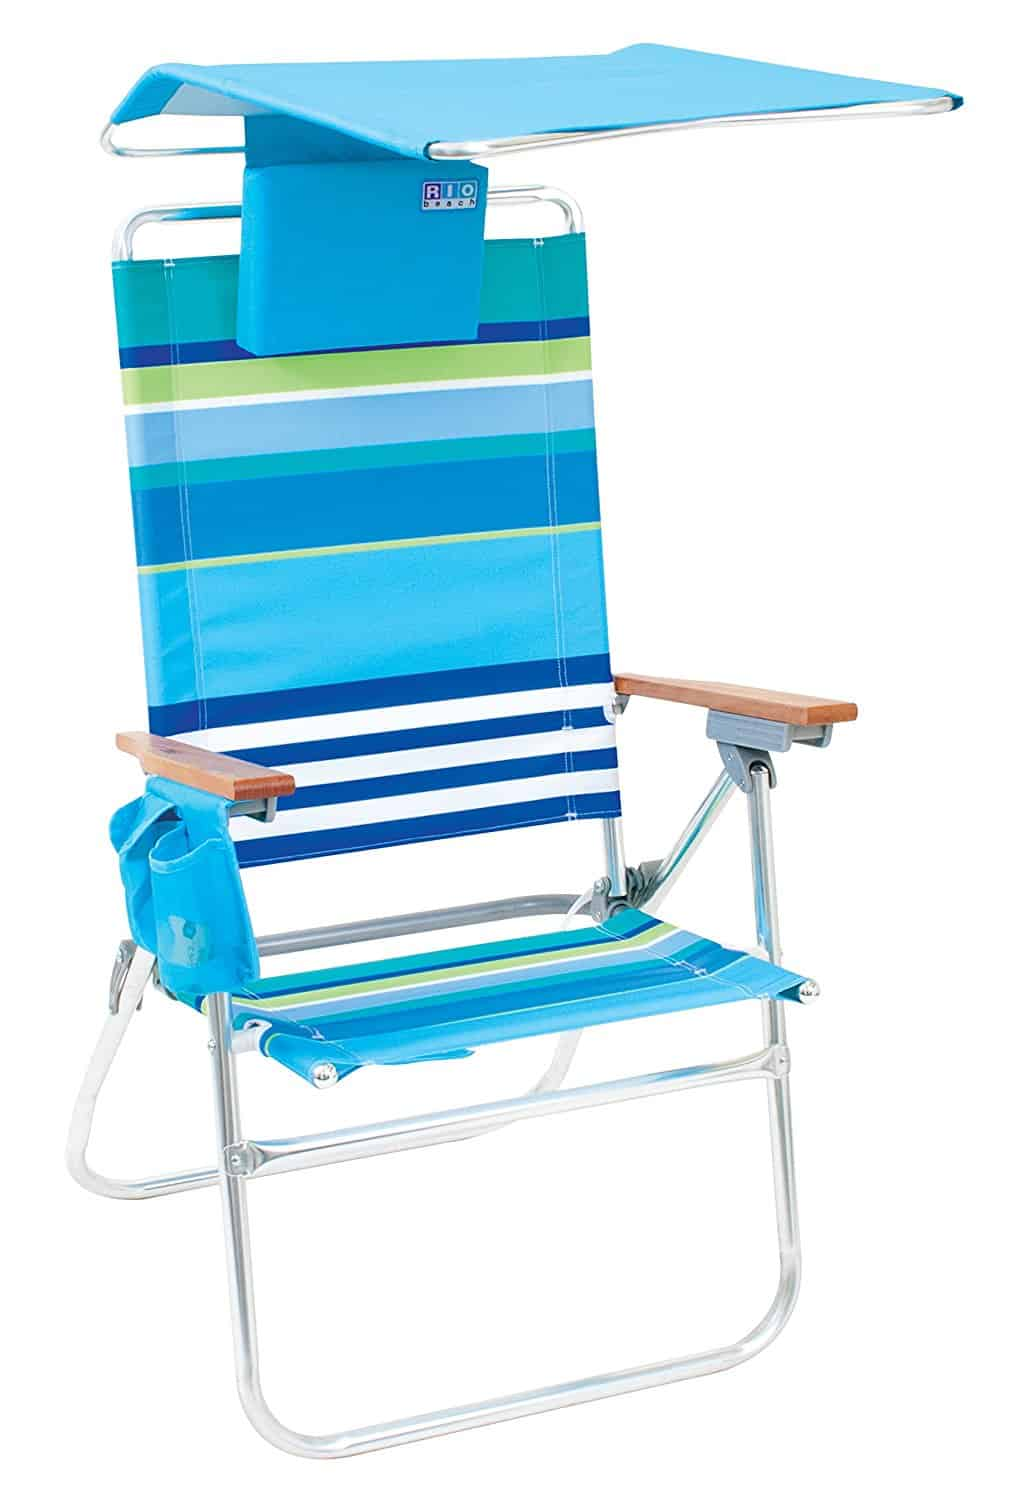 This beach chair helps keep the sun out of your eyes